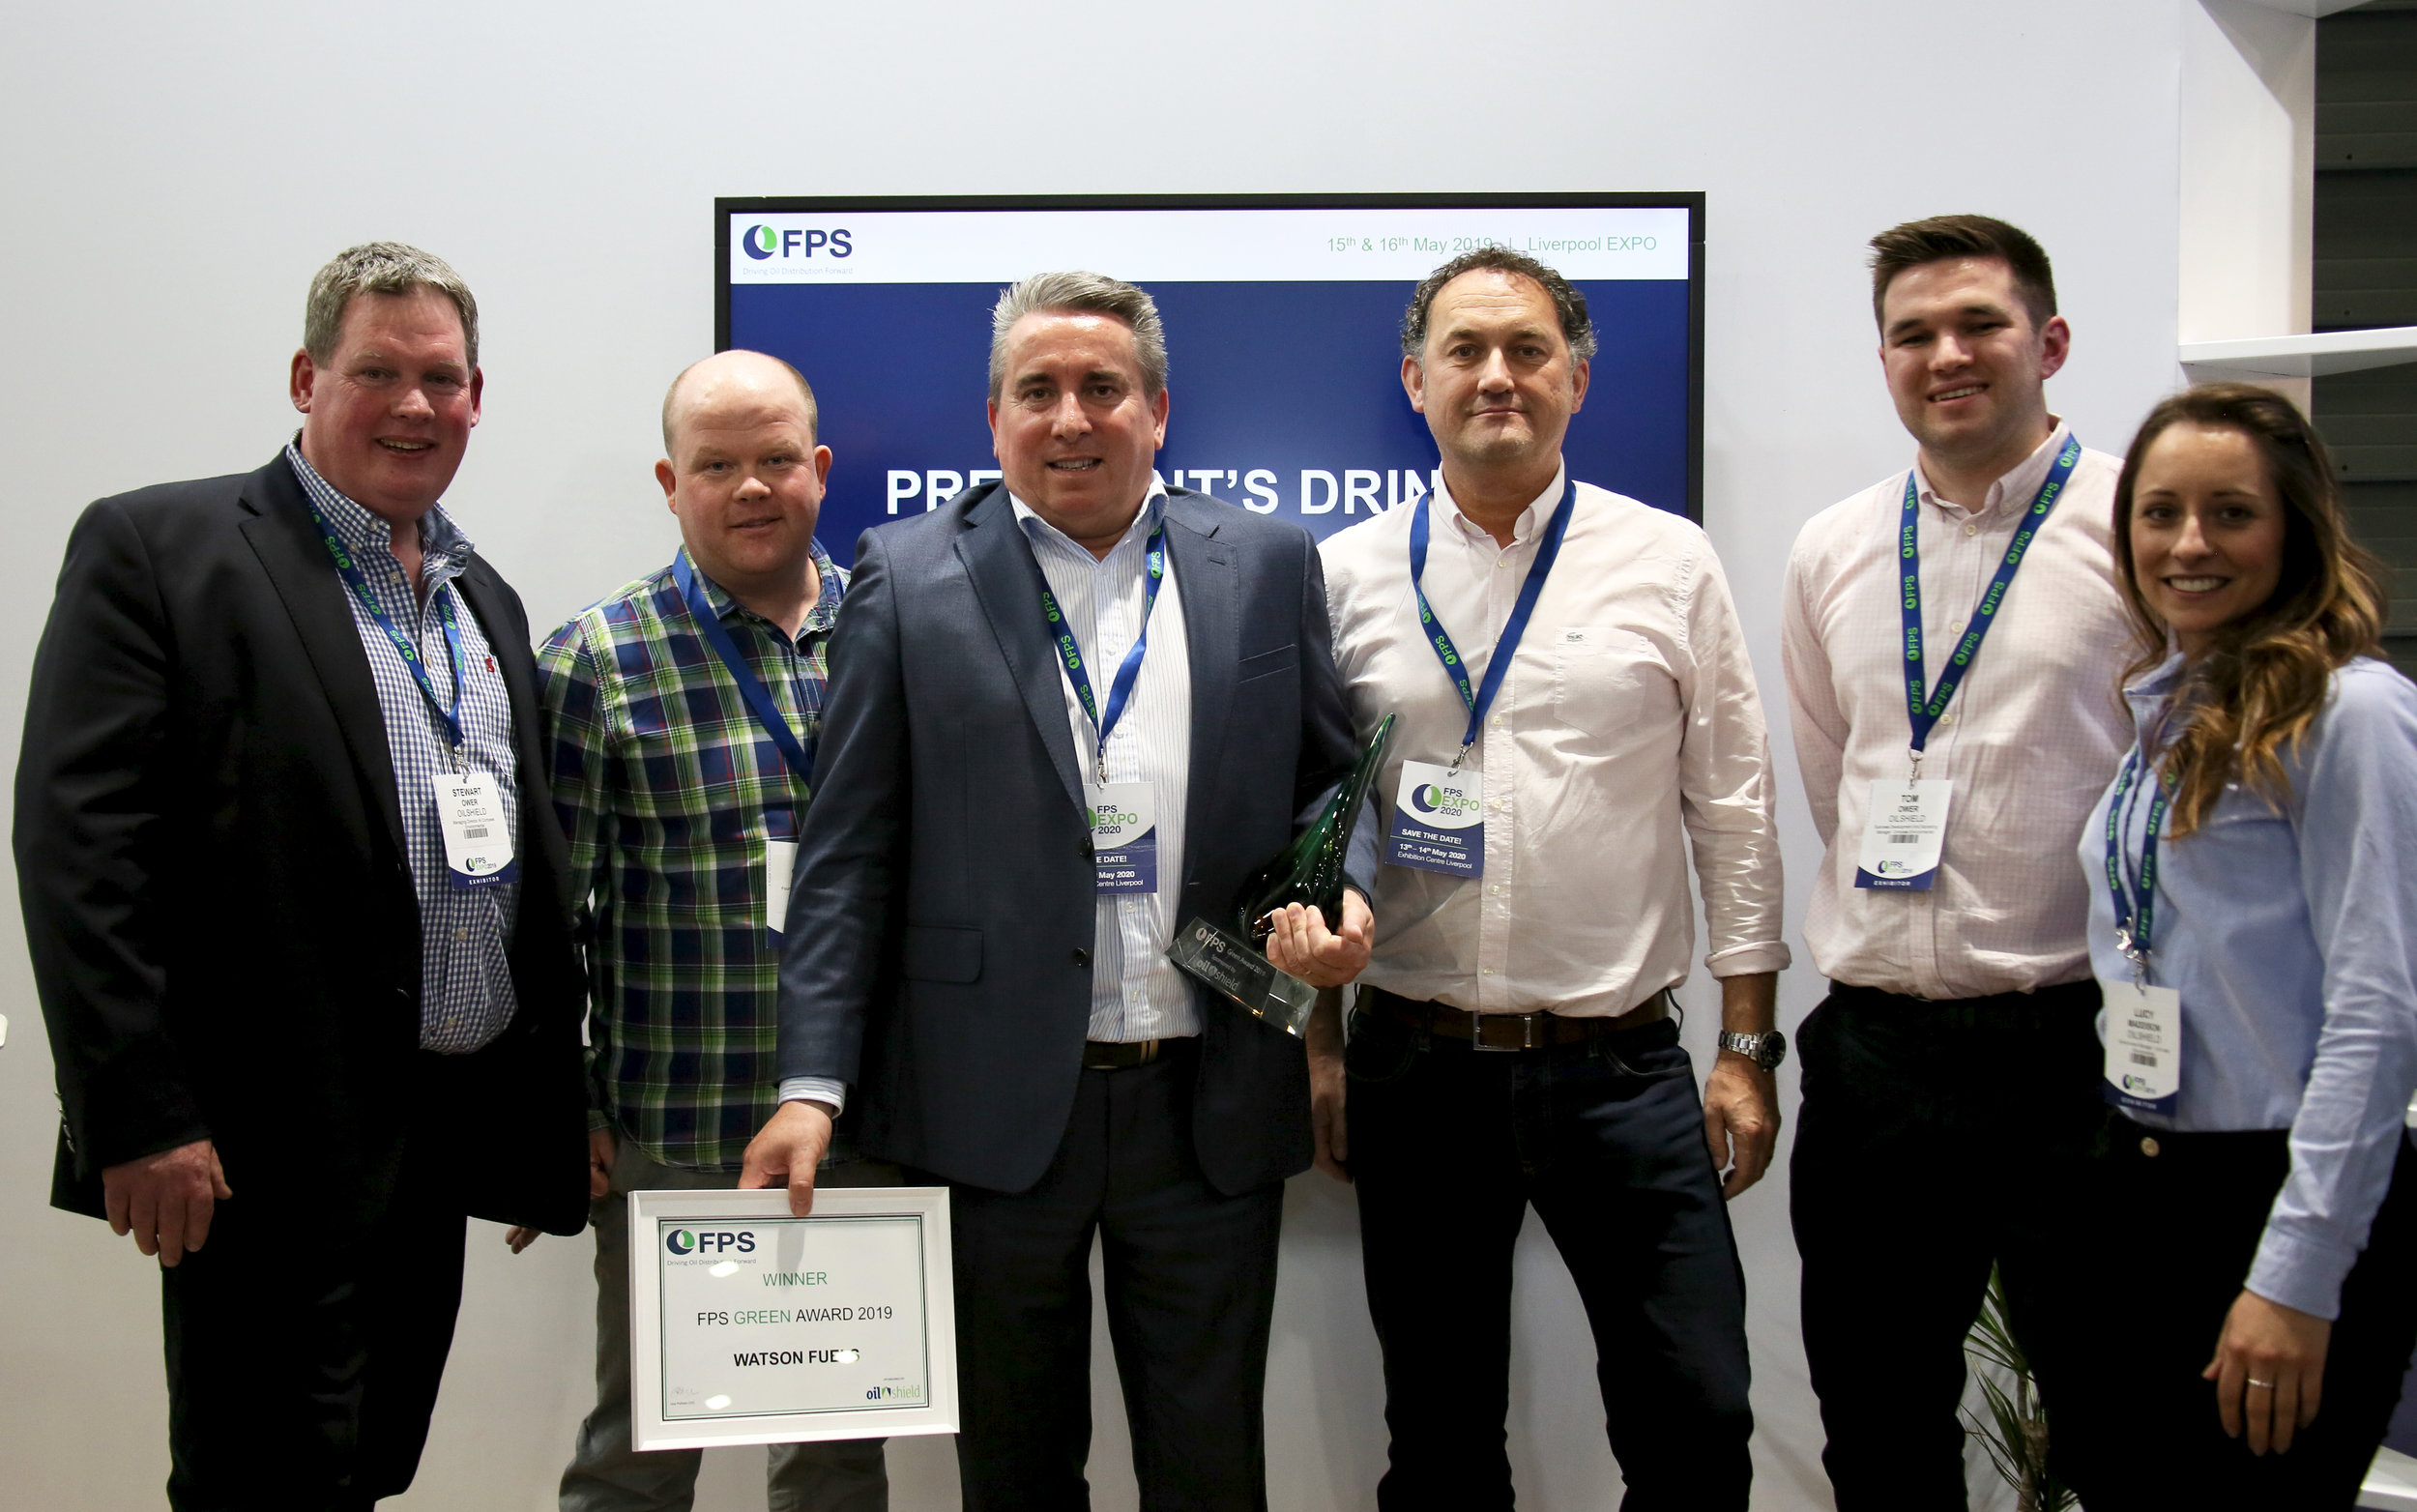 The Oilshield team present Bob Taylor, Managing Director at World Fuel Services - Land (UK), with the FPS Green Award, sponsored by Oilshield.